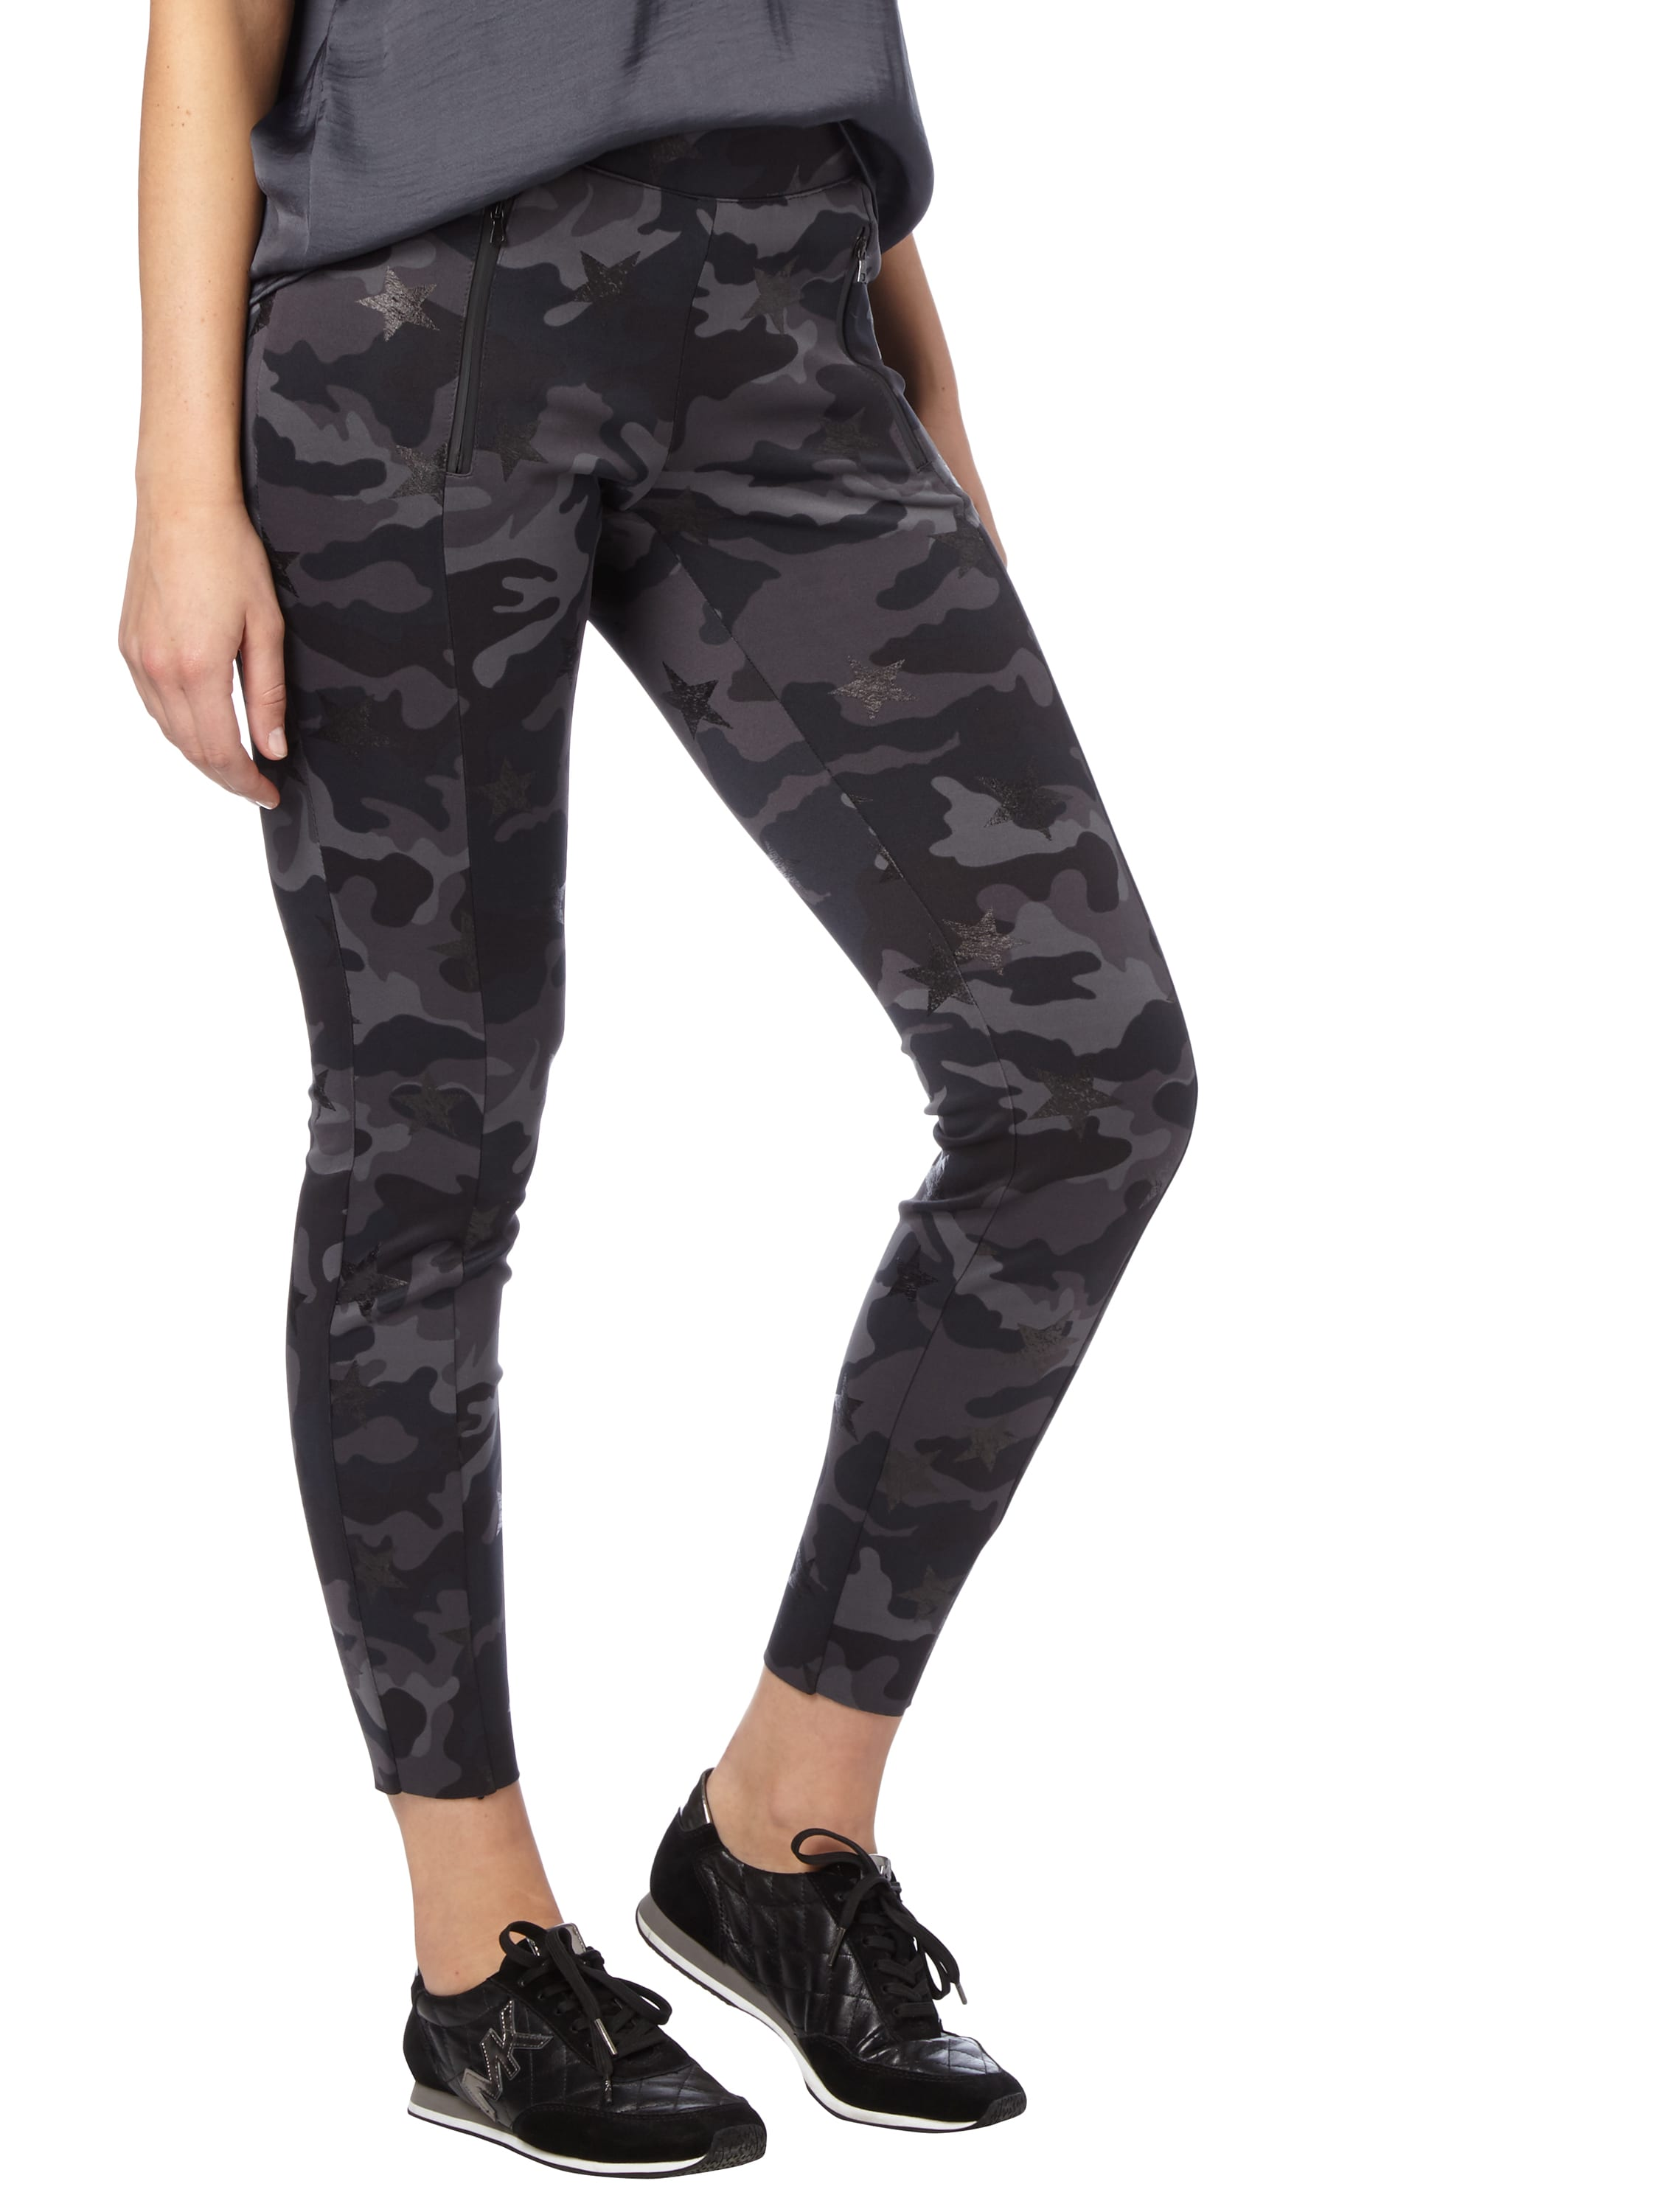 leggings mit camouflage muster fashion id online shop. Black Bedroom Furniture Sets. Home Design Ideas